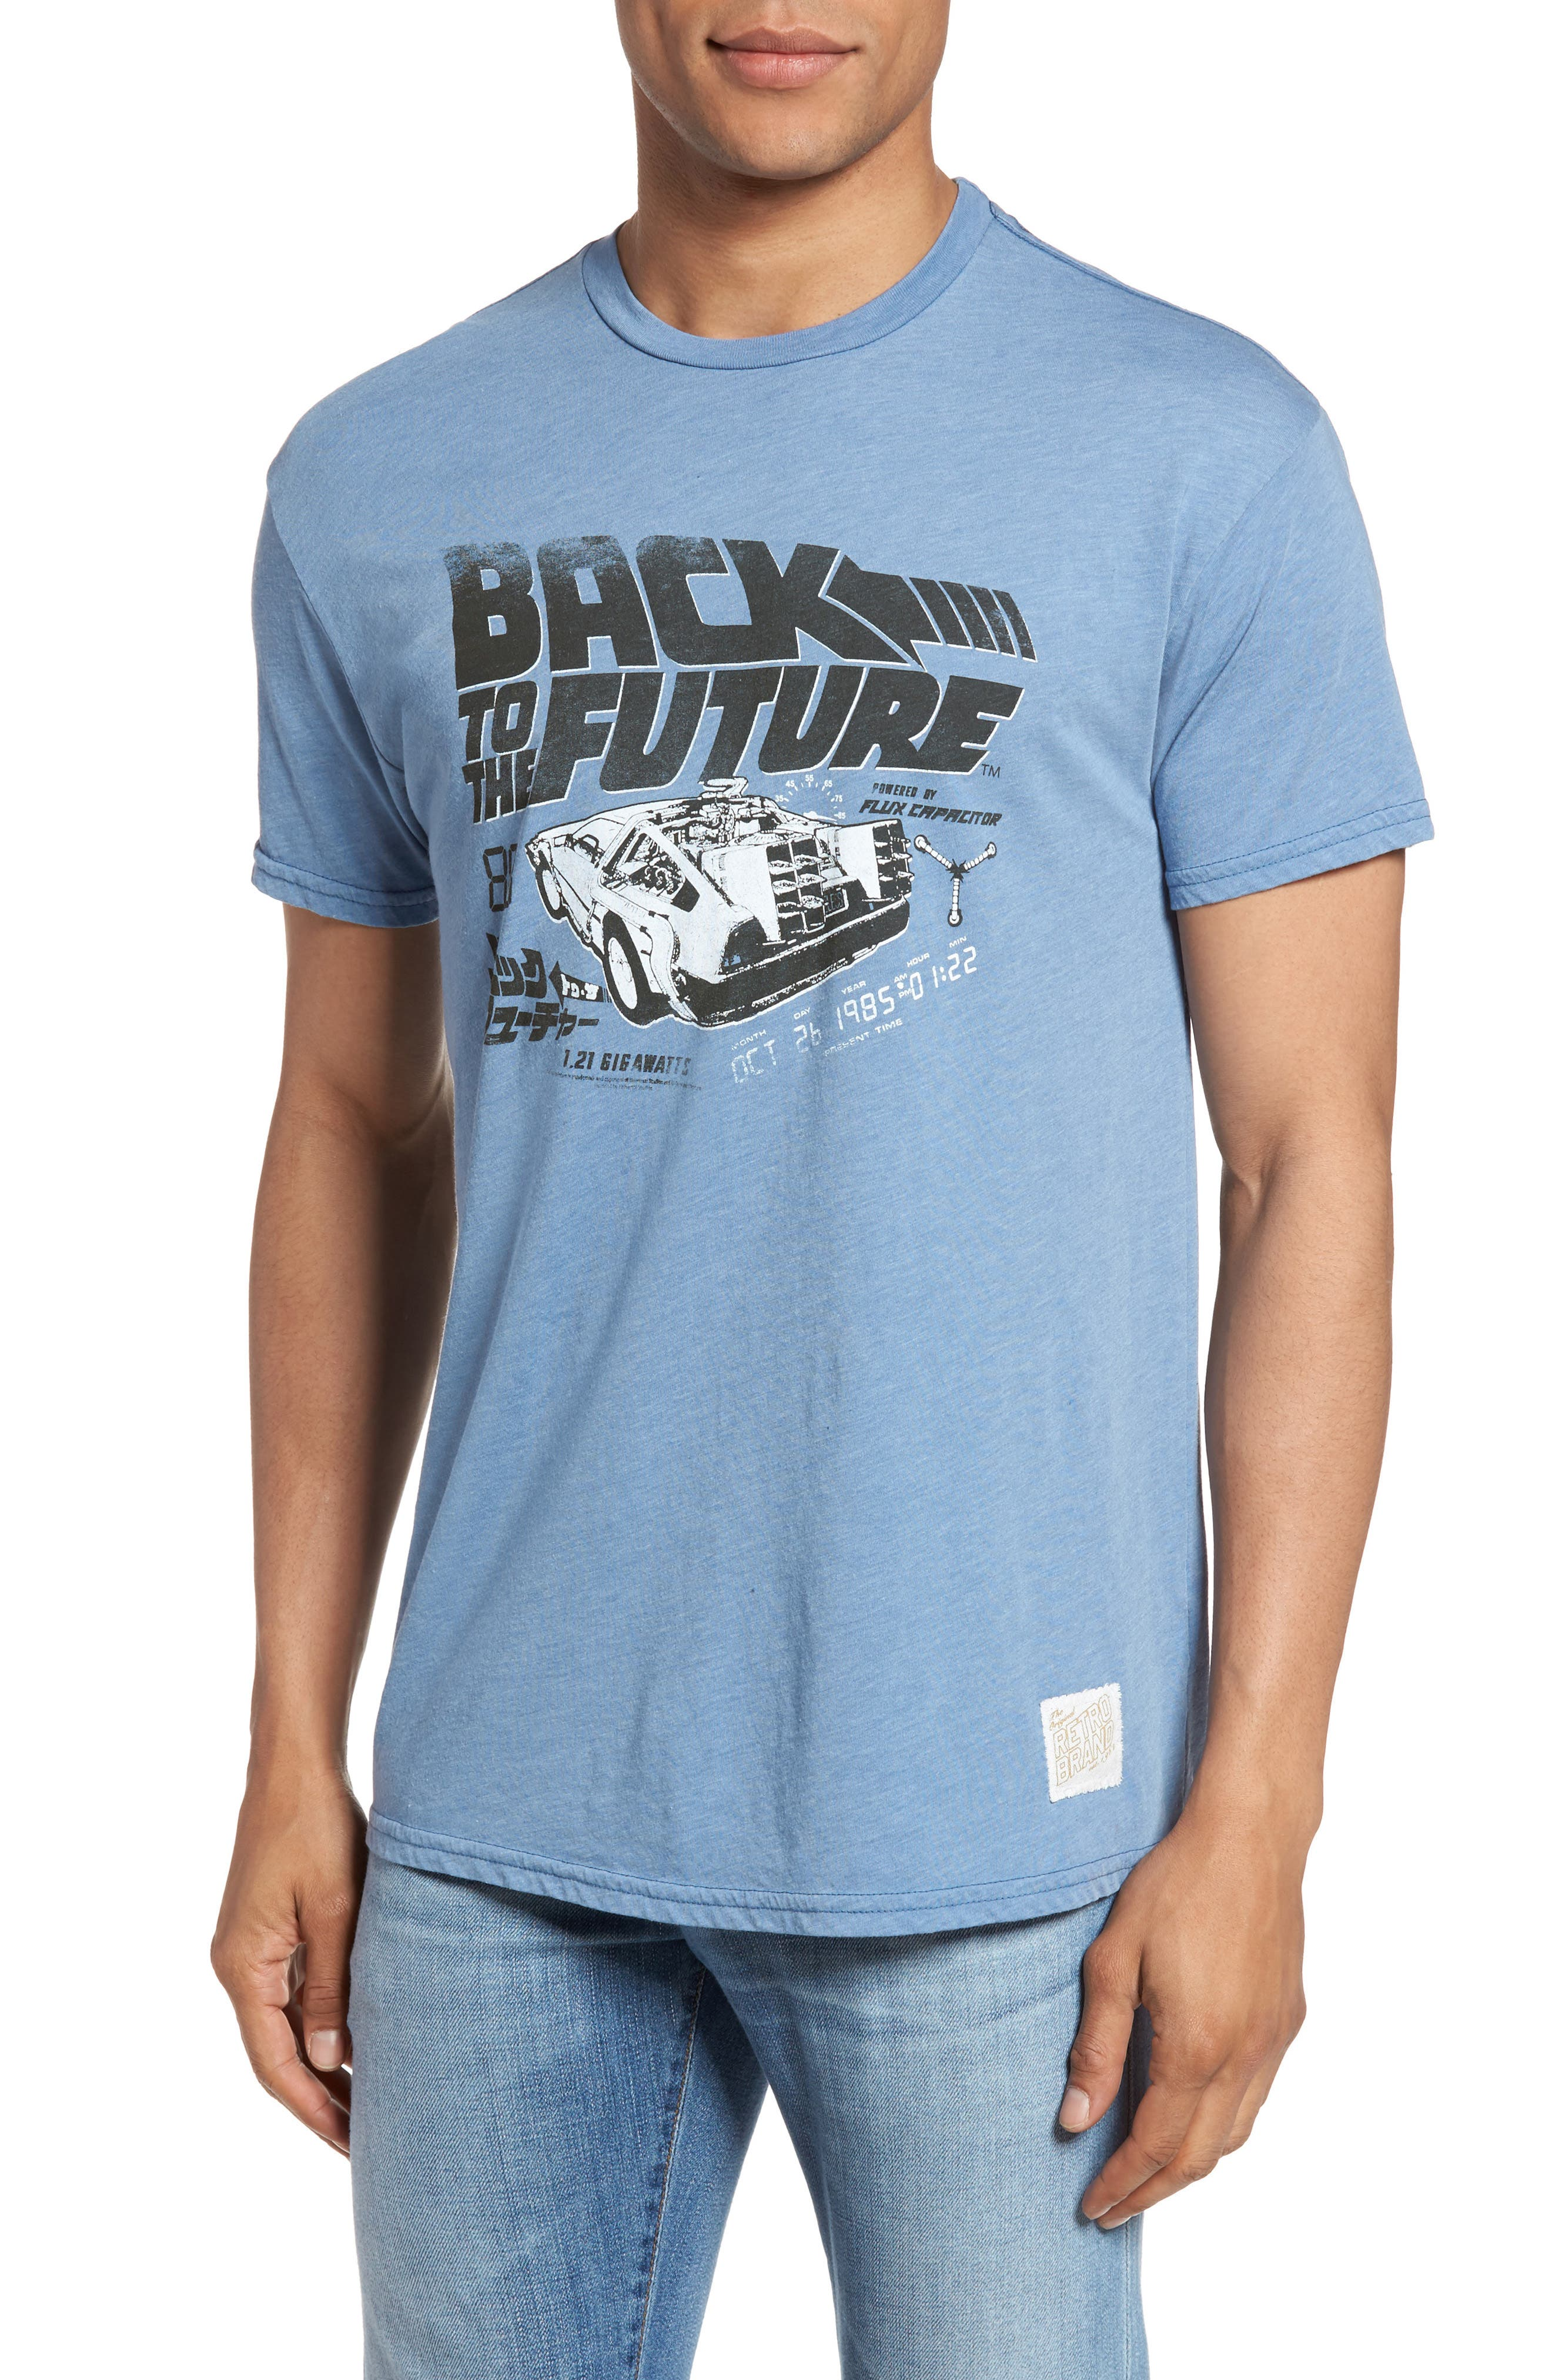 Alternate Image 1 Selected - Retro Brand Back to the Future Graphic T-Shirt